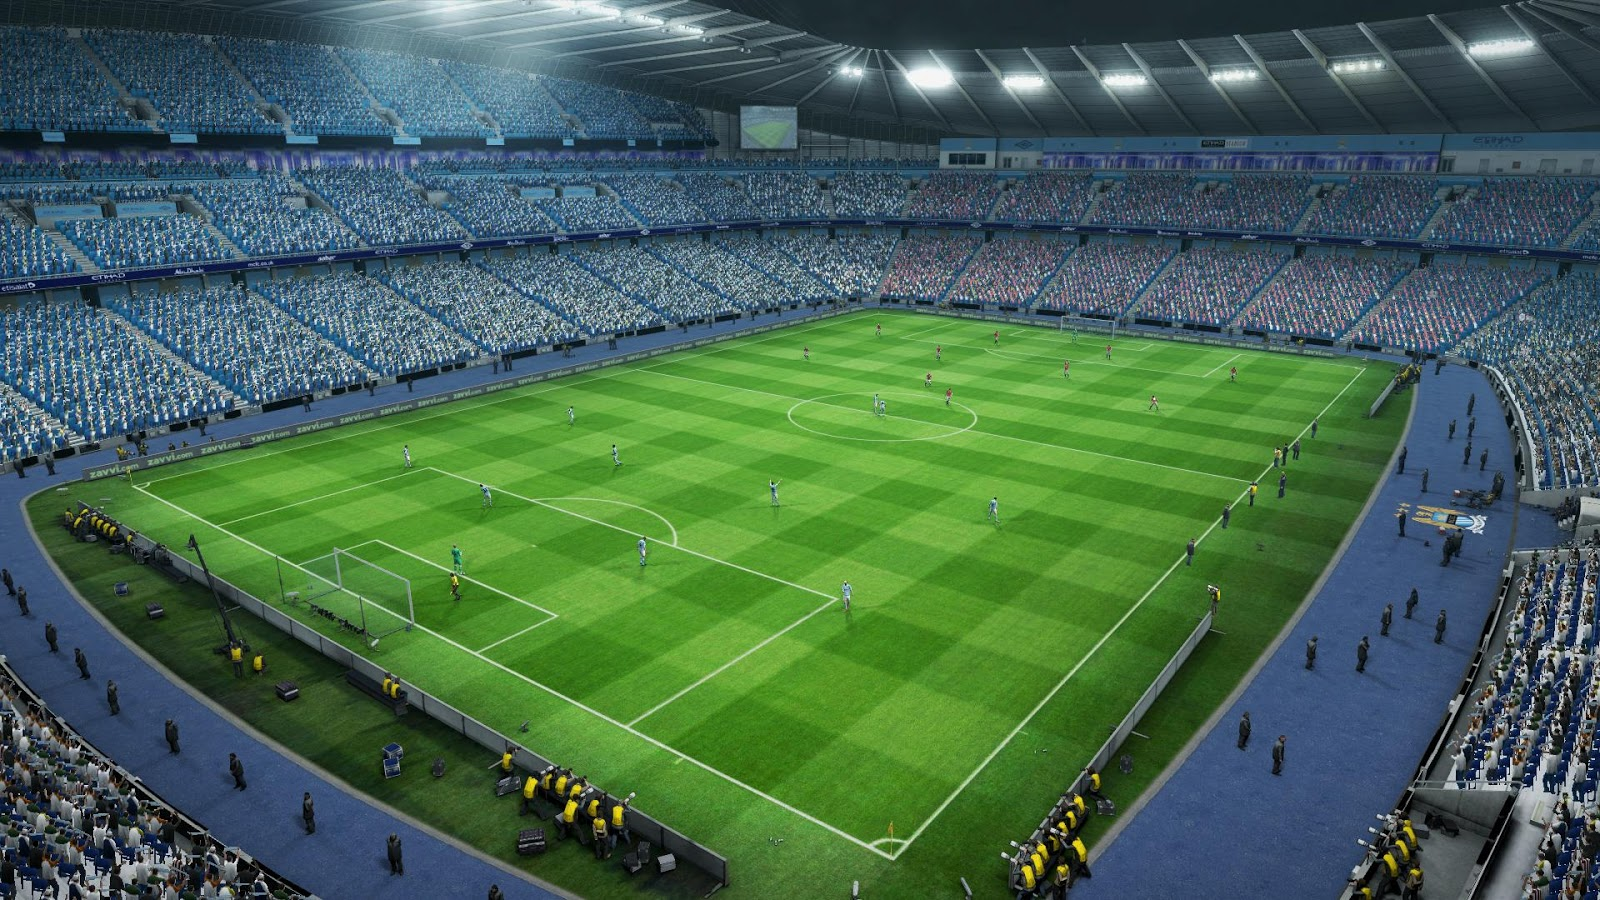 etihad stadium - photo #1